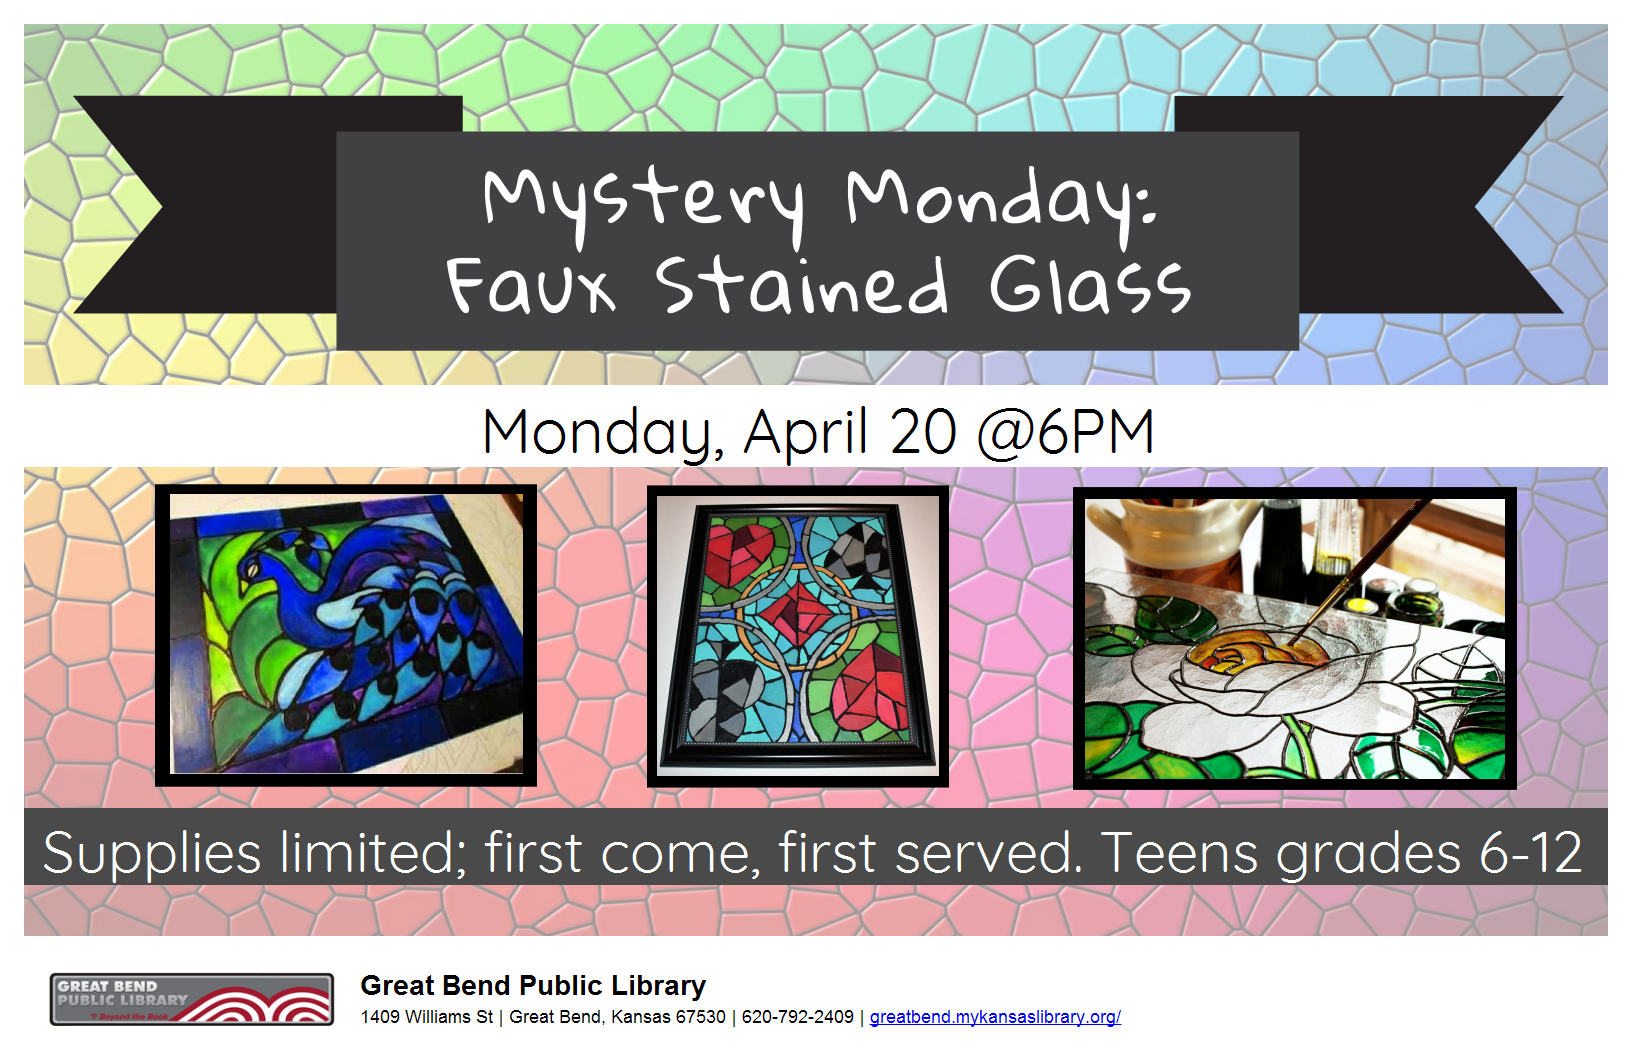 Mystery Monday: Faux Stained Glass